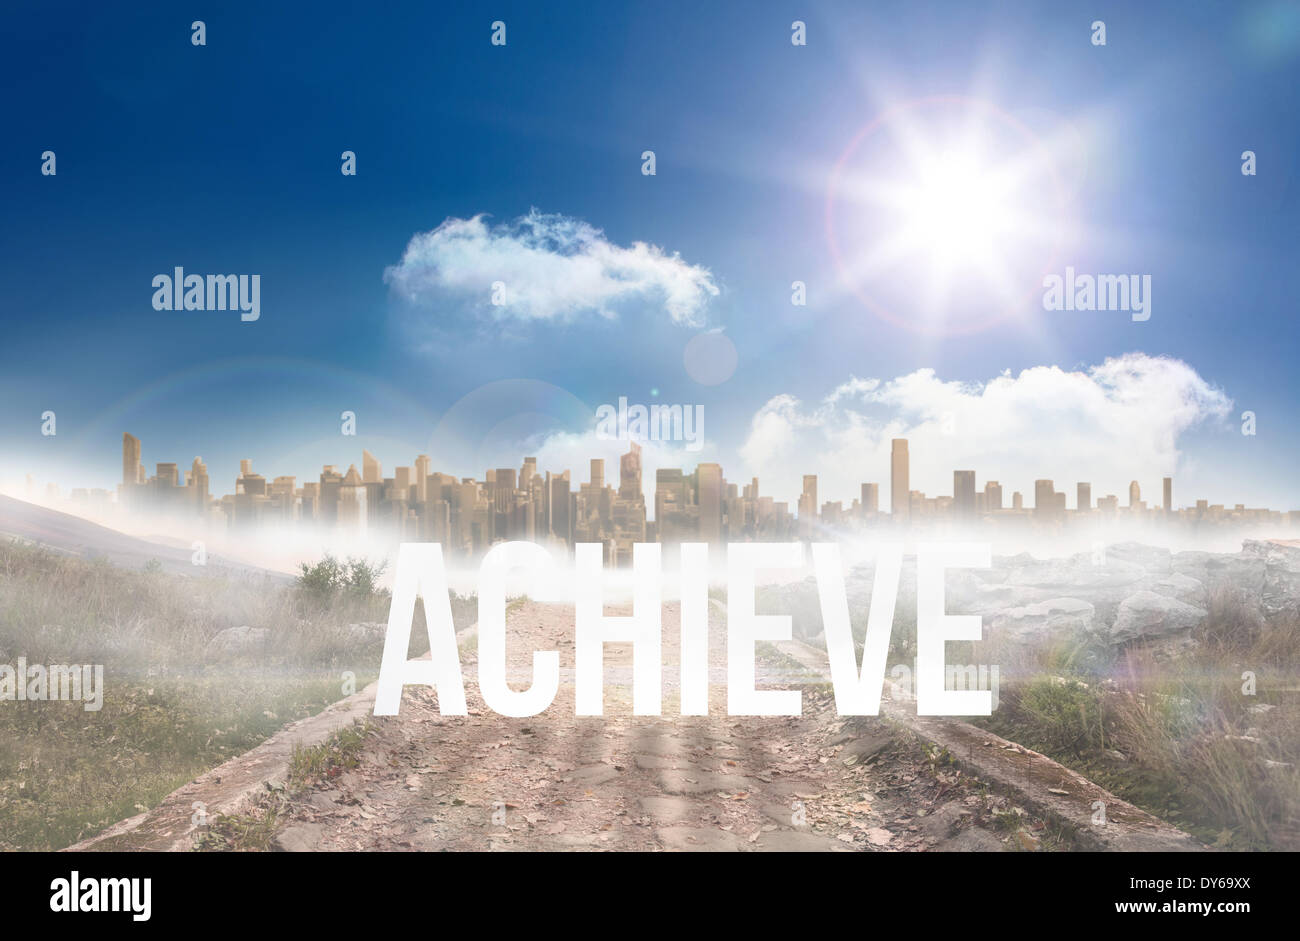 Achieve against stony path leading to large urban sprawl under the sun - Stock Image